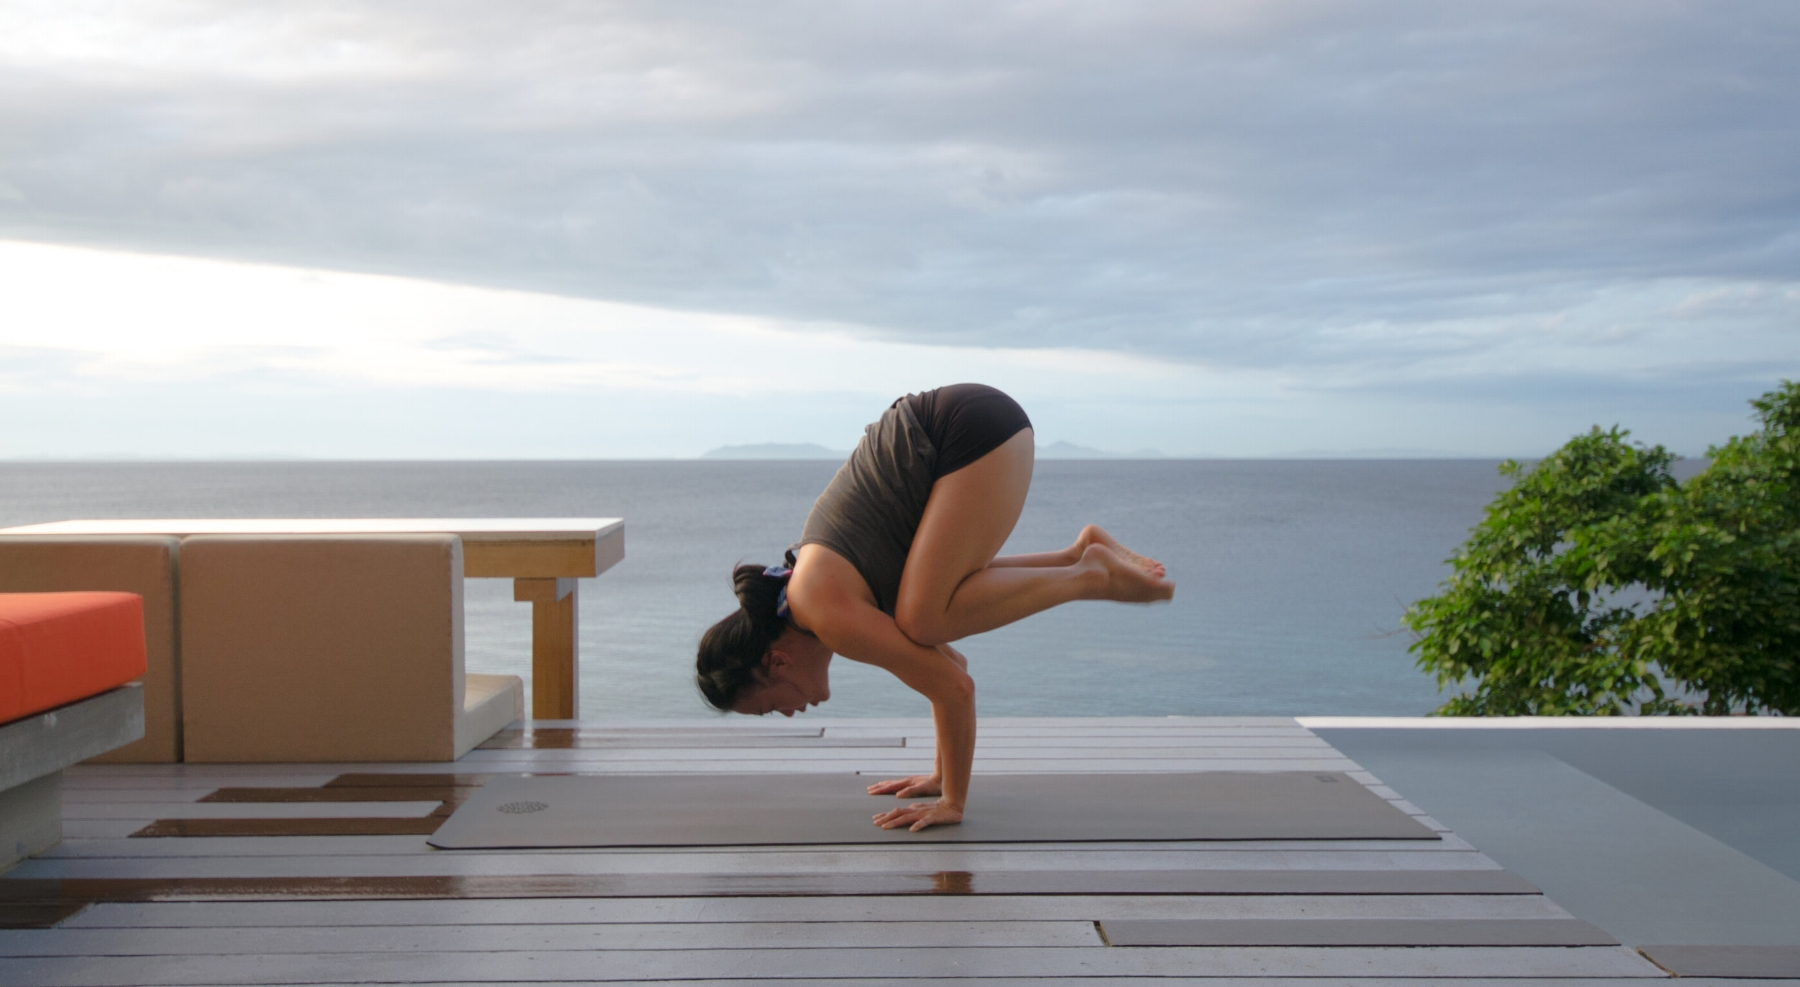 Yoga on the deck with uninterrupted view of the ocean